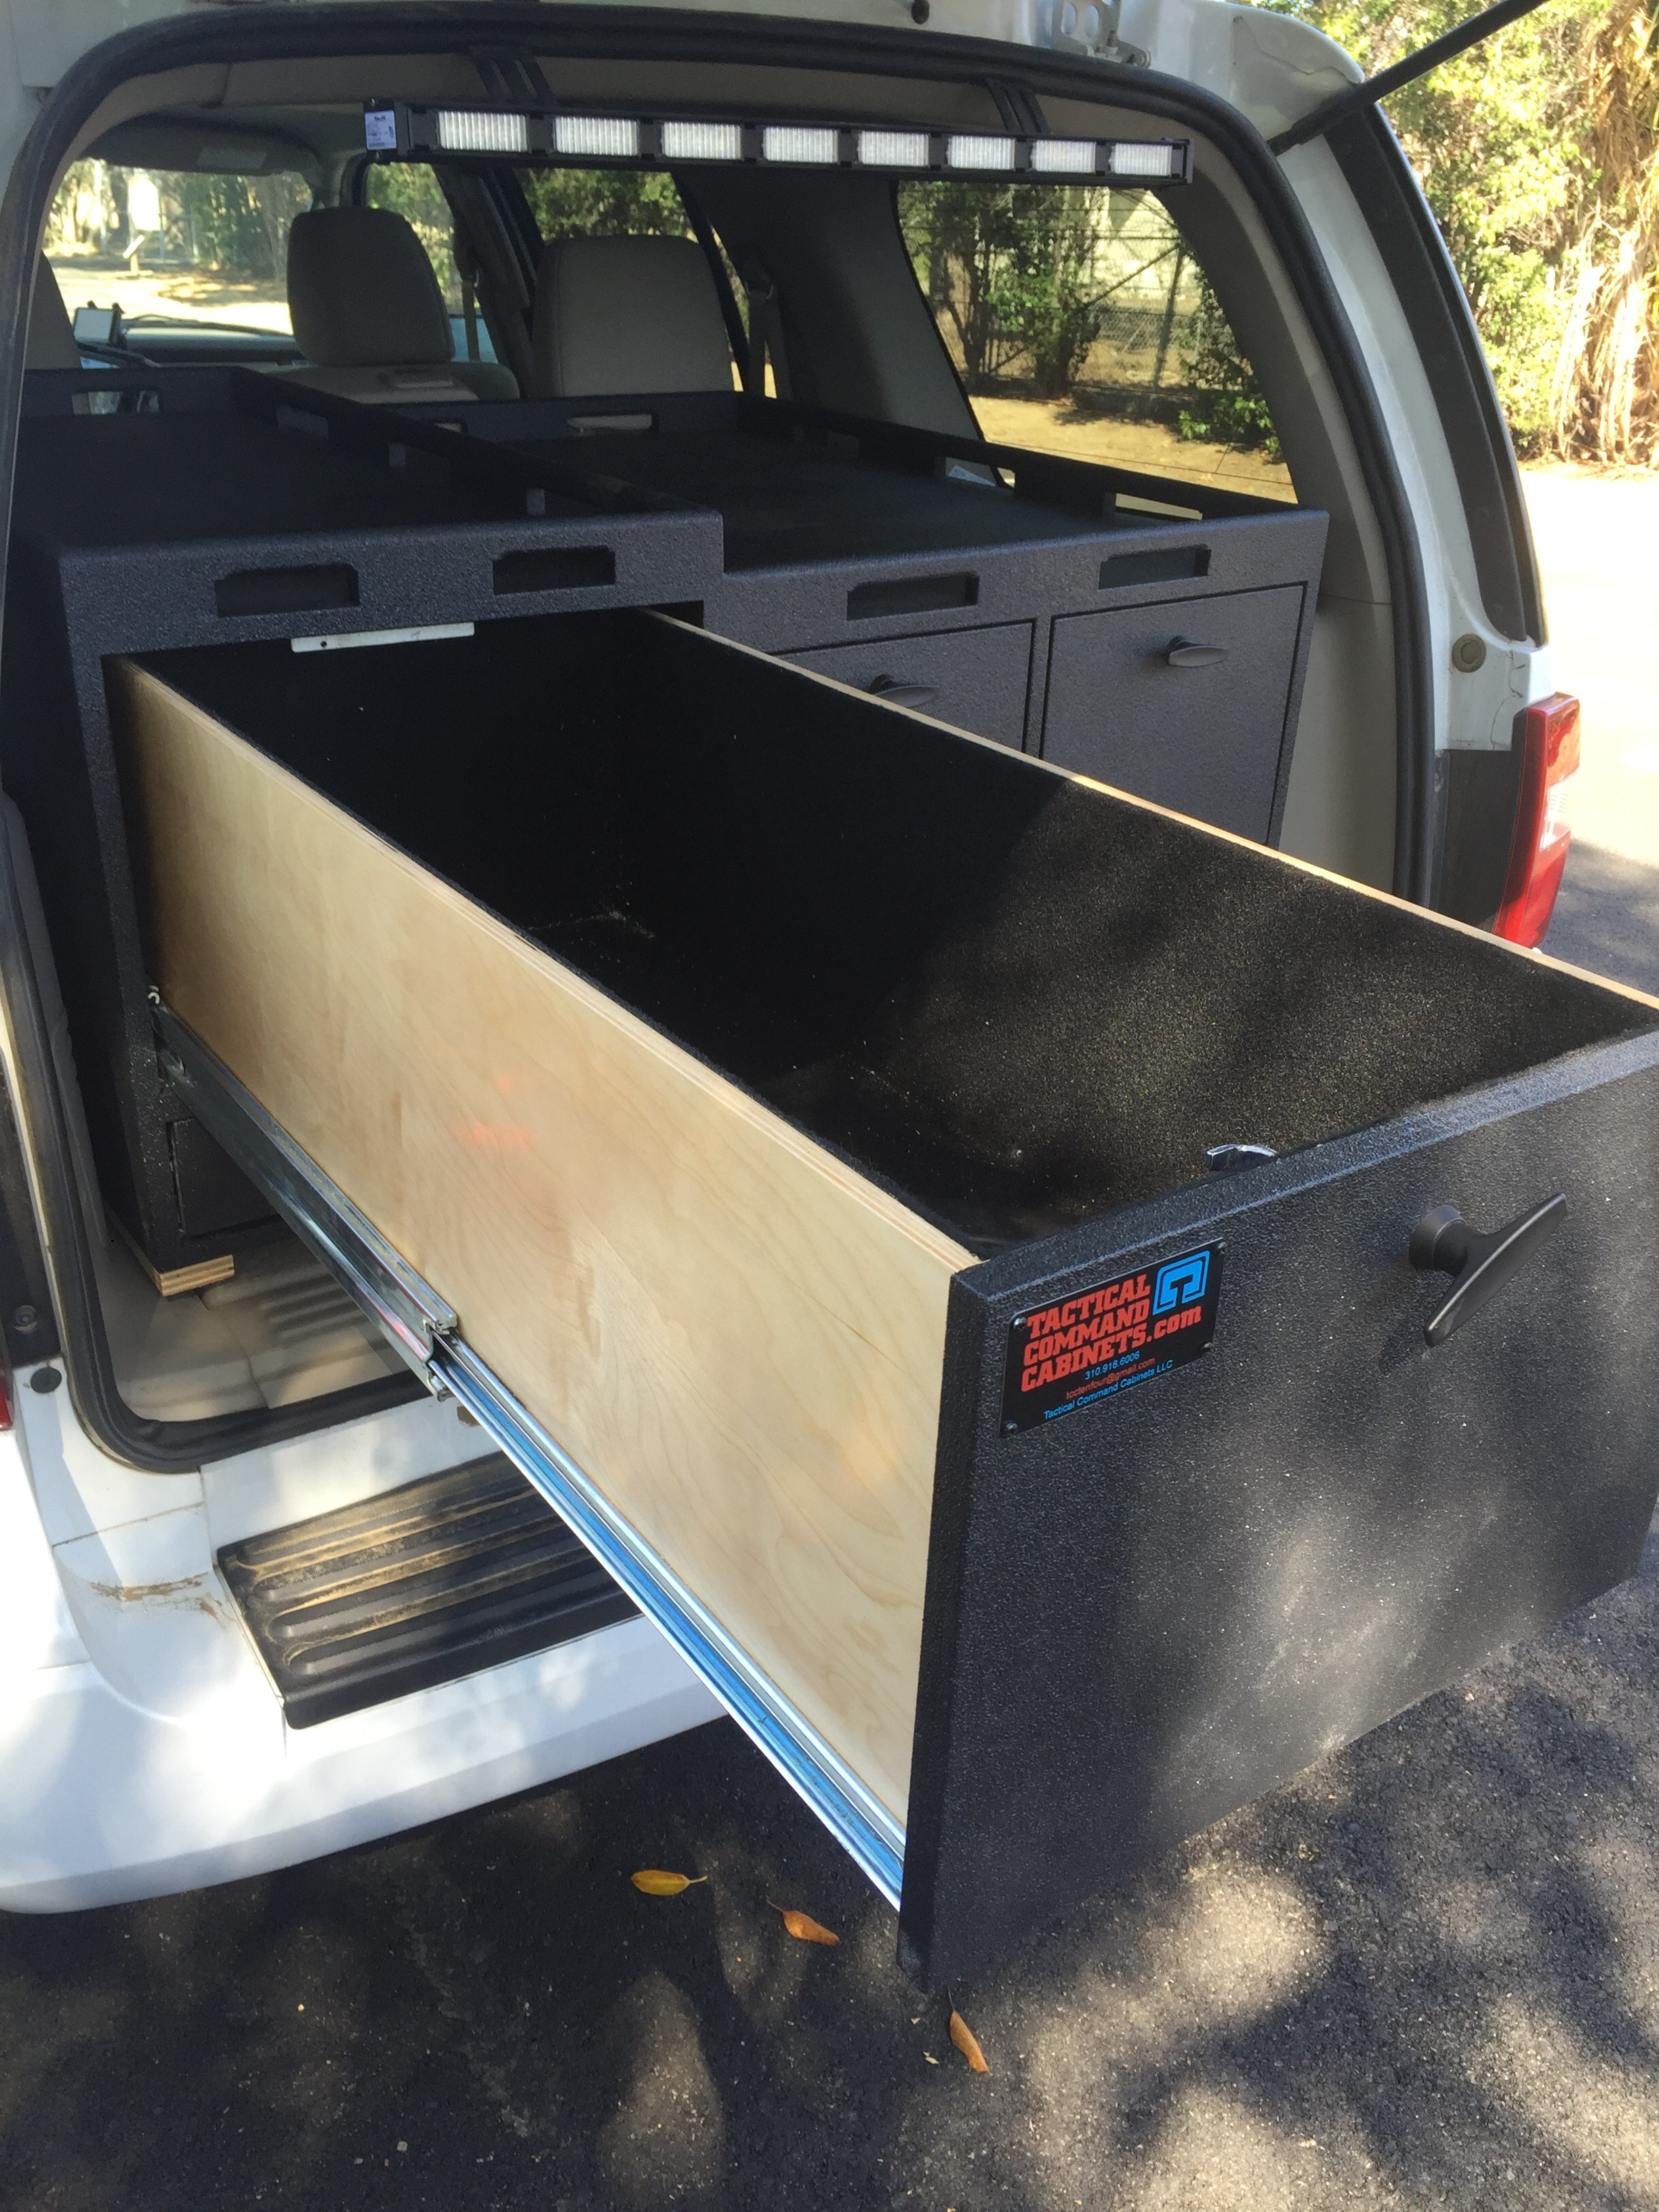 Tactical cabinet for rear of Ford Explorer